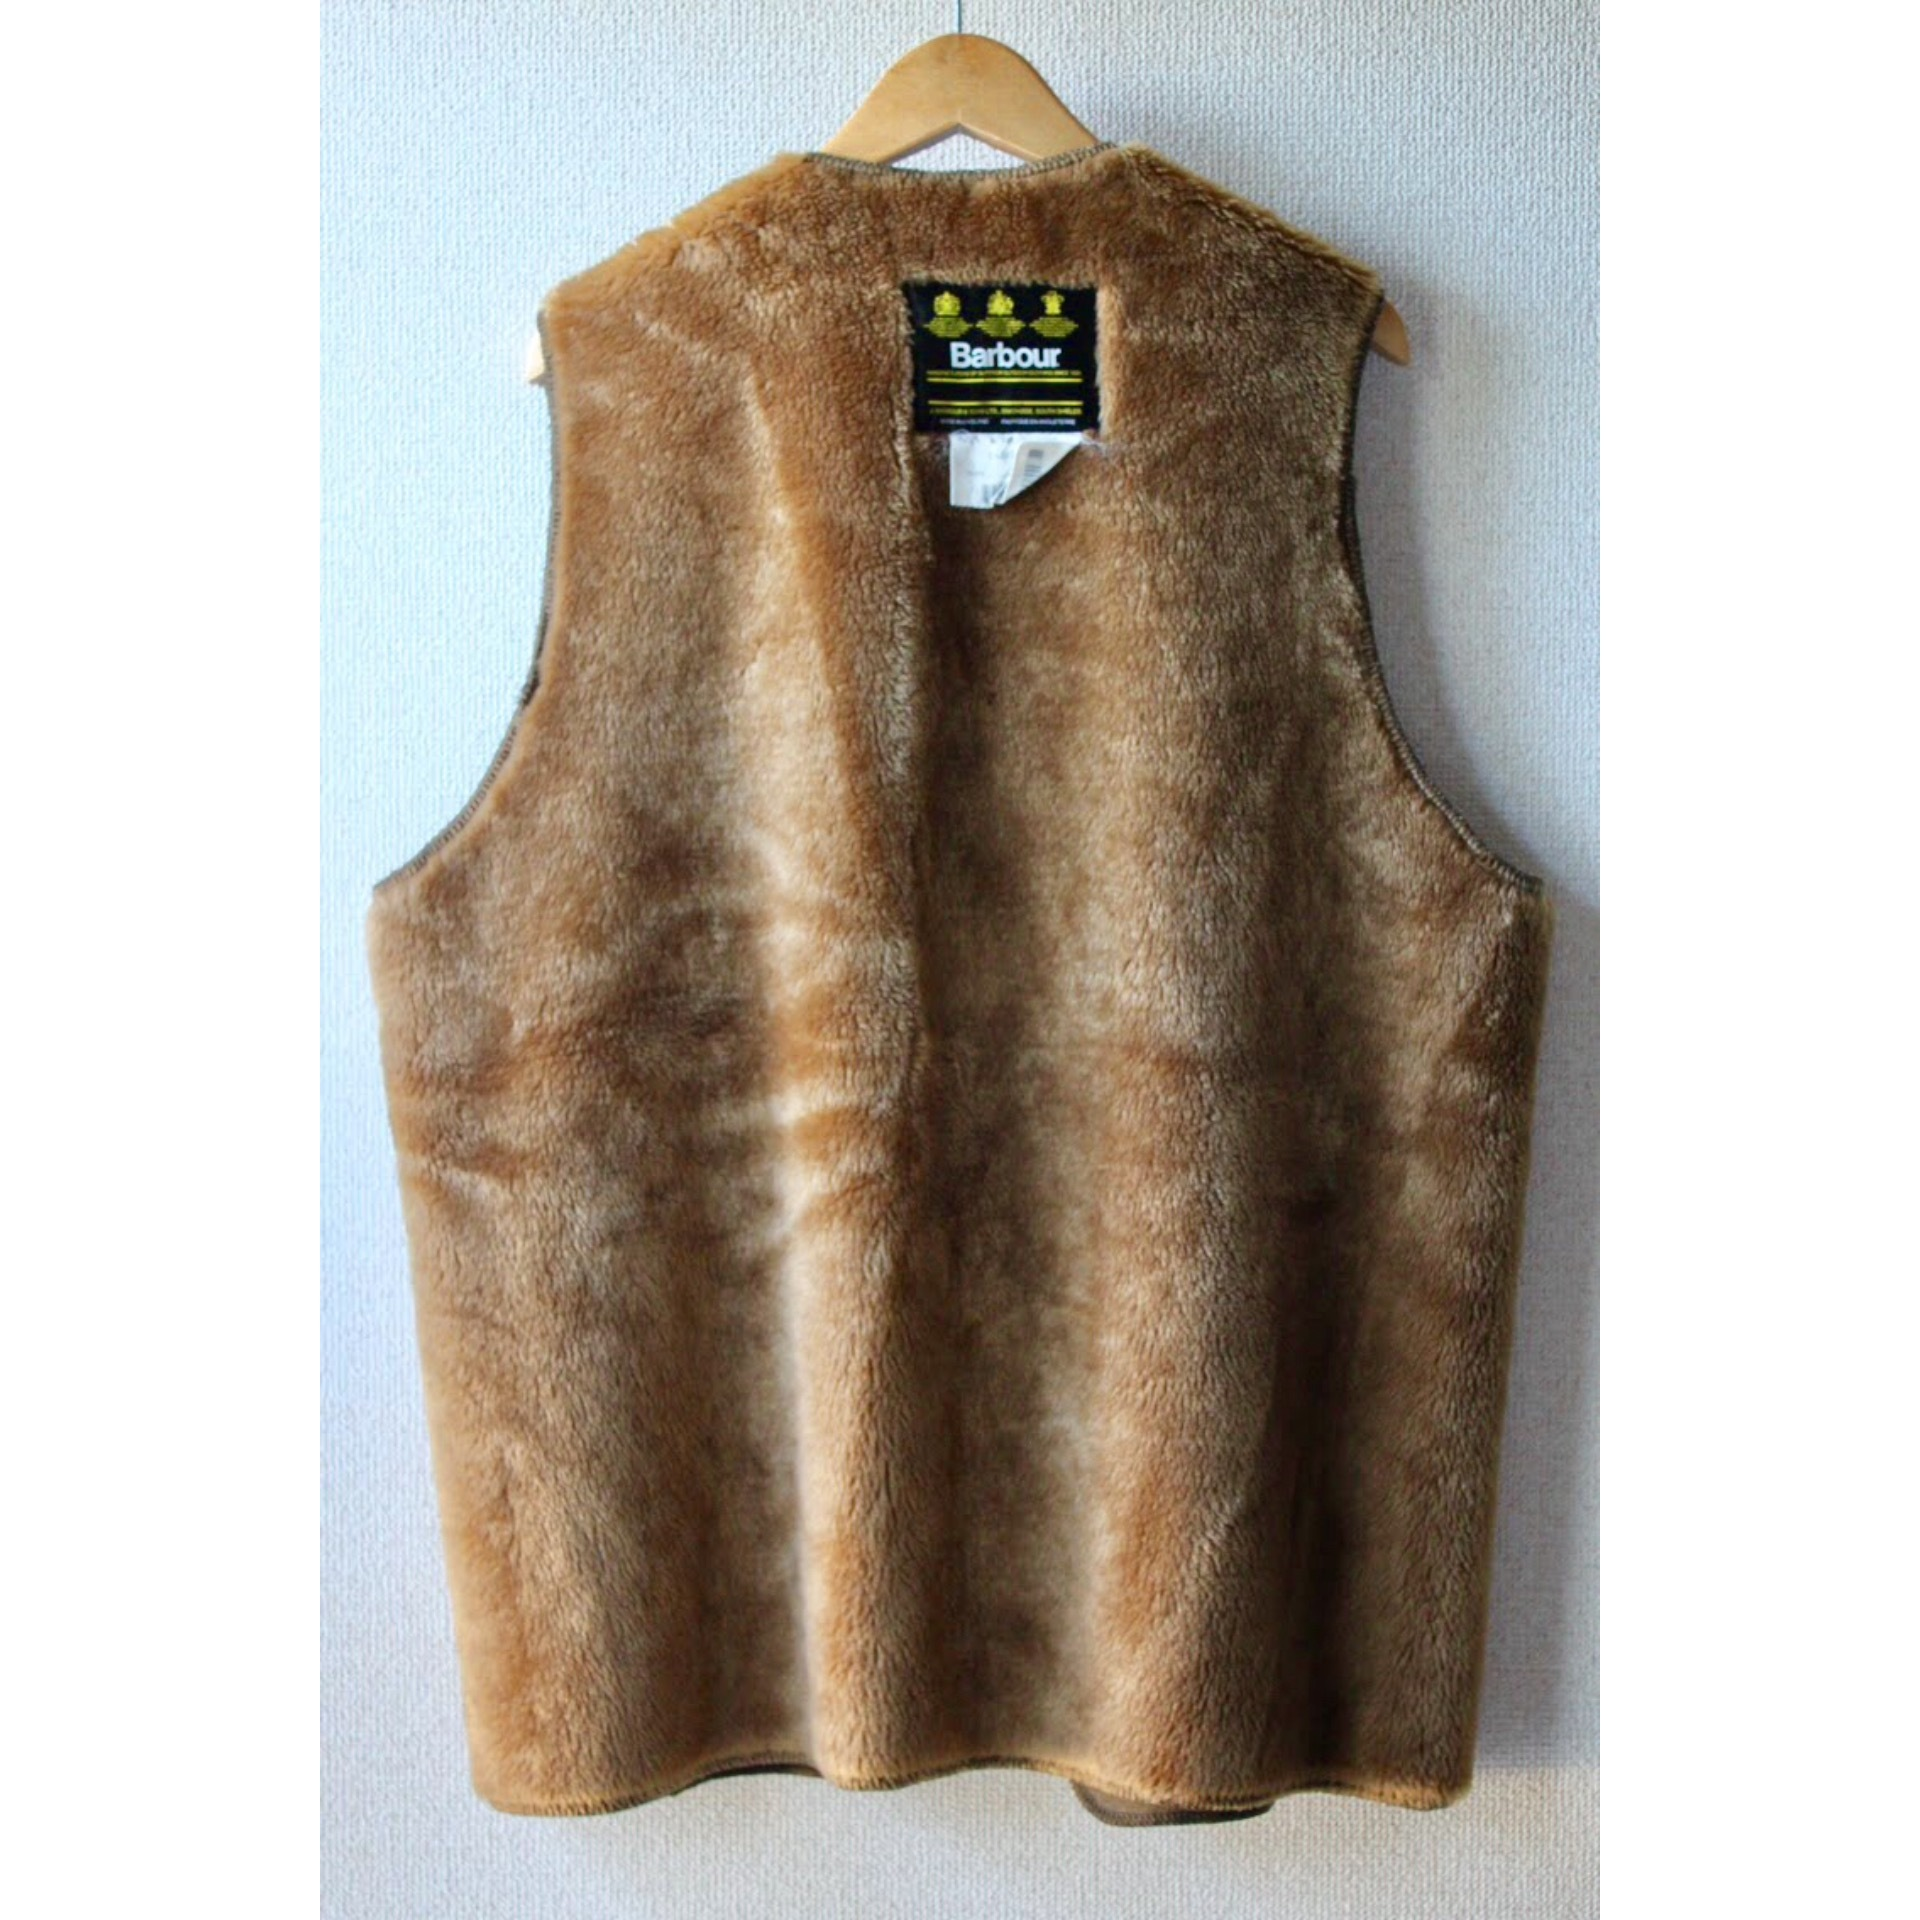 Vintage fake fur liner vest by Barbour